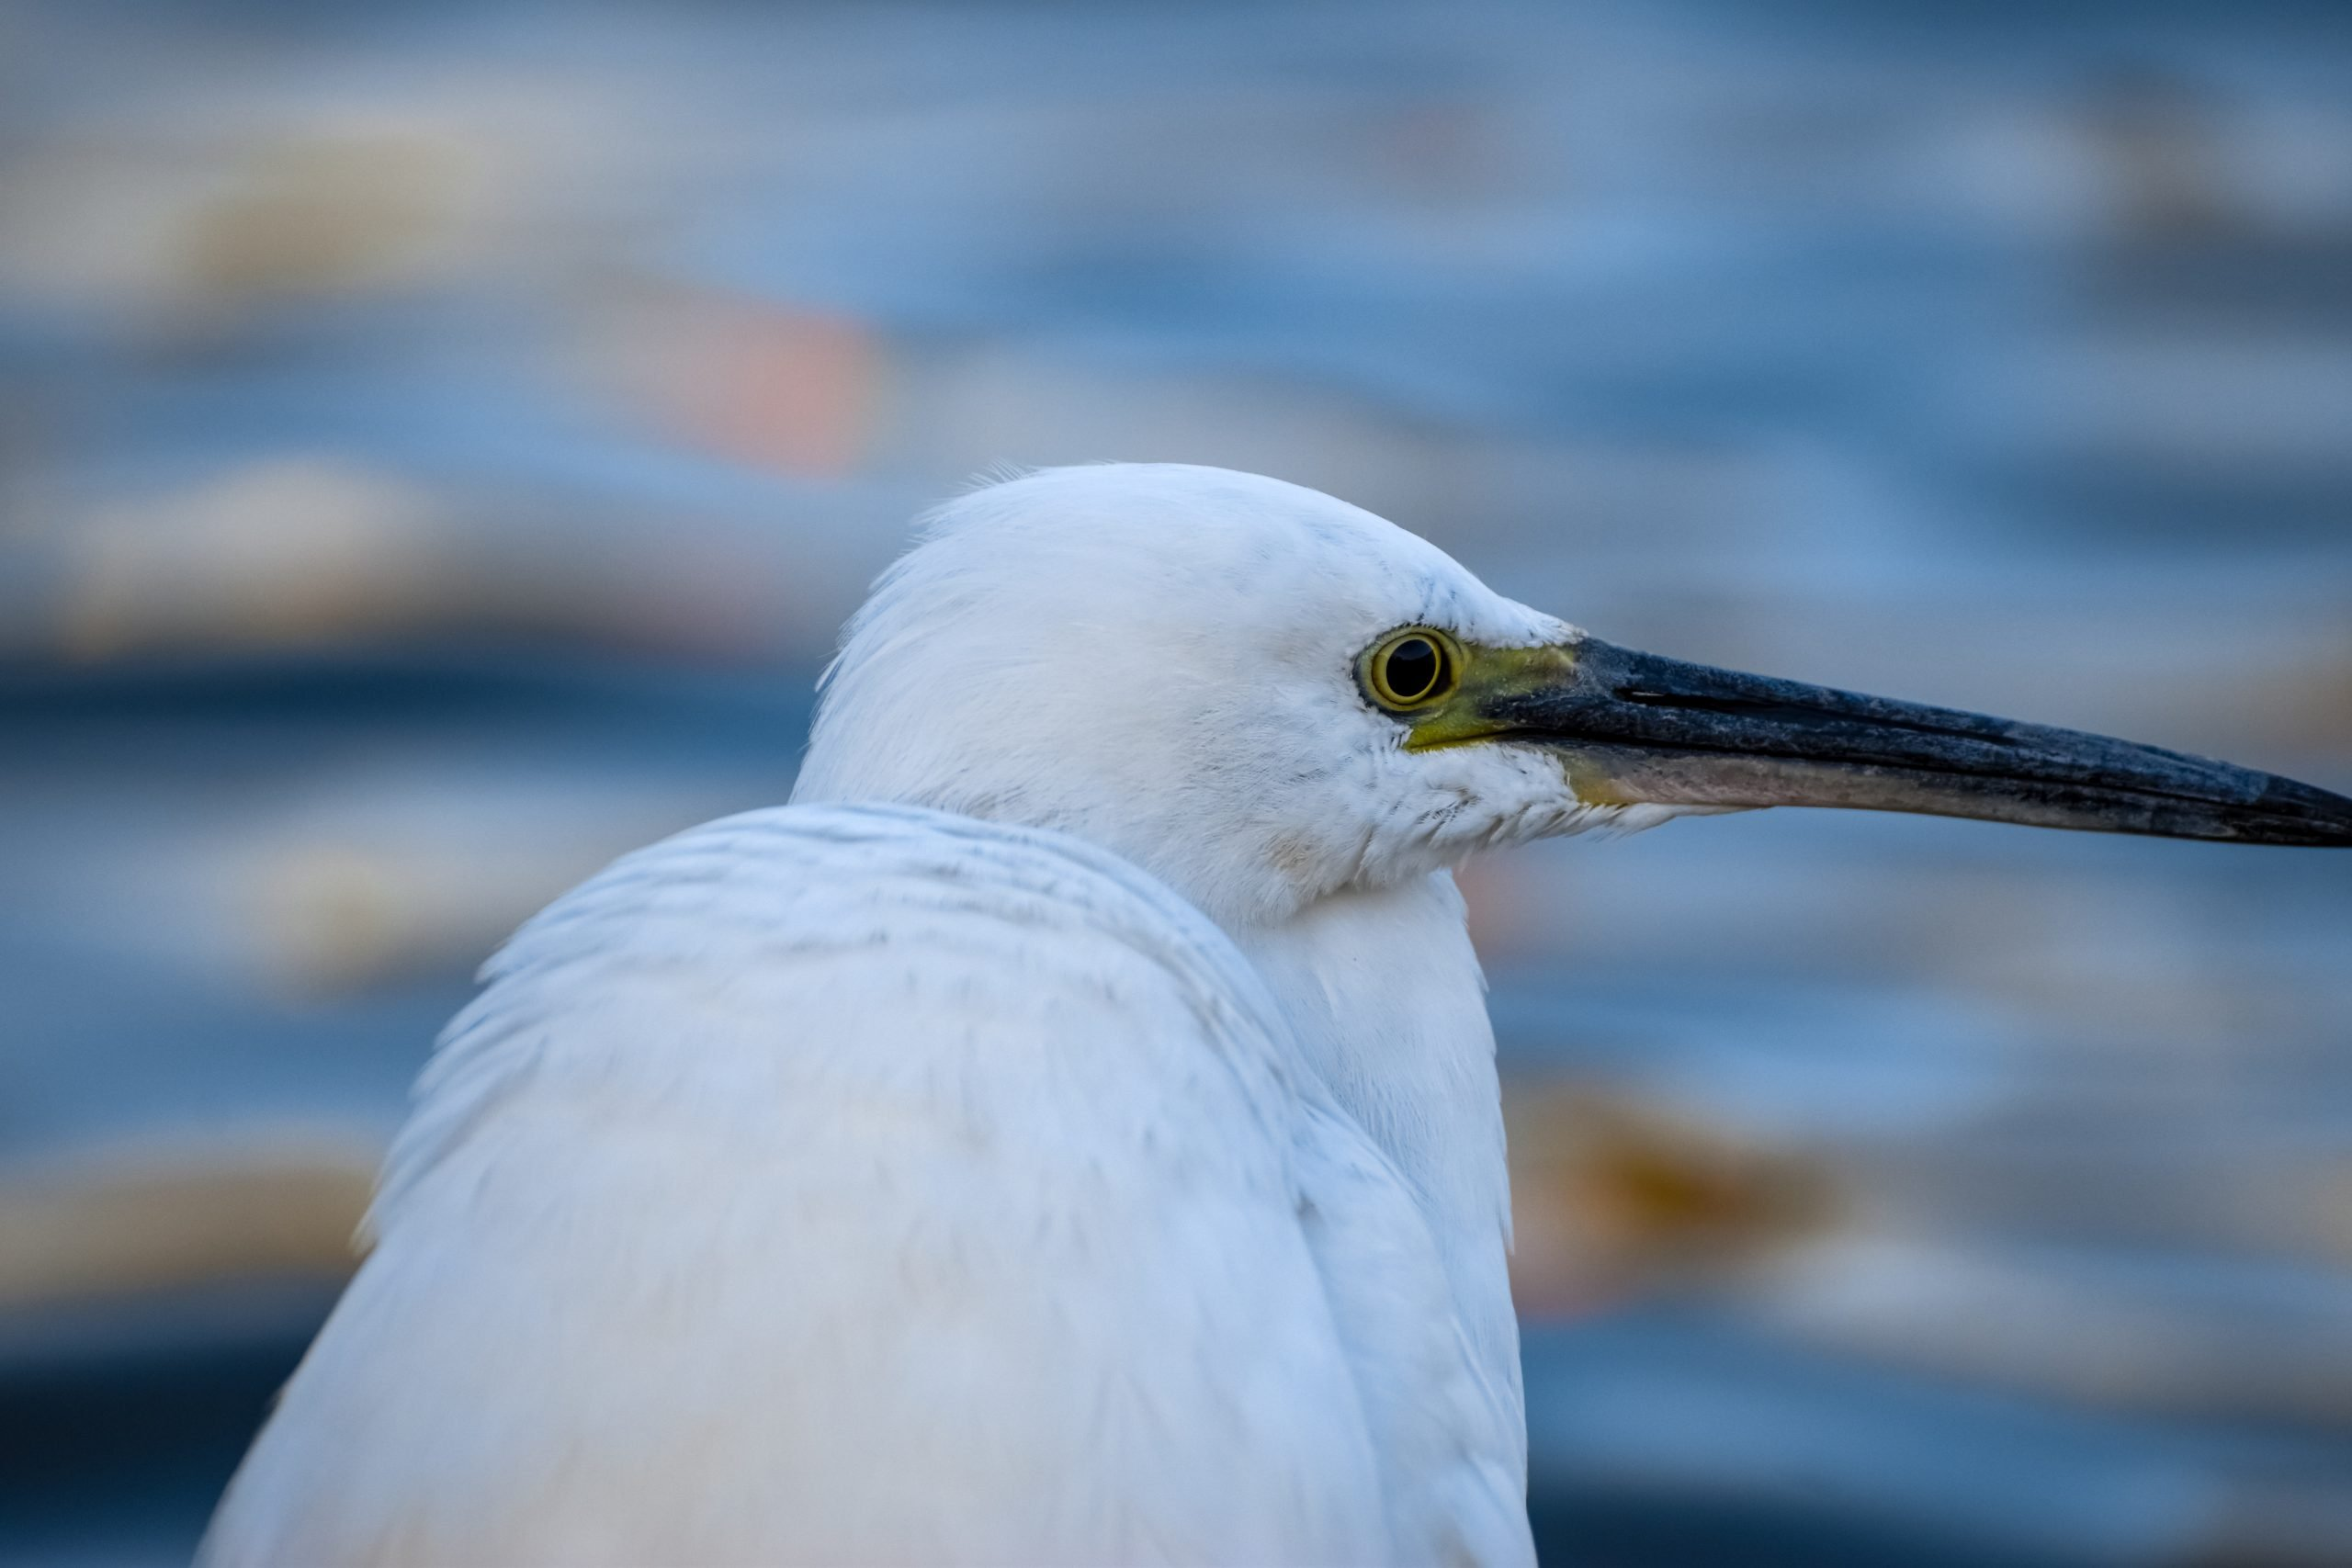 A white bird with long beak